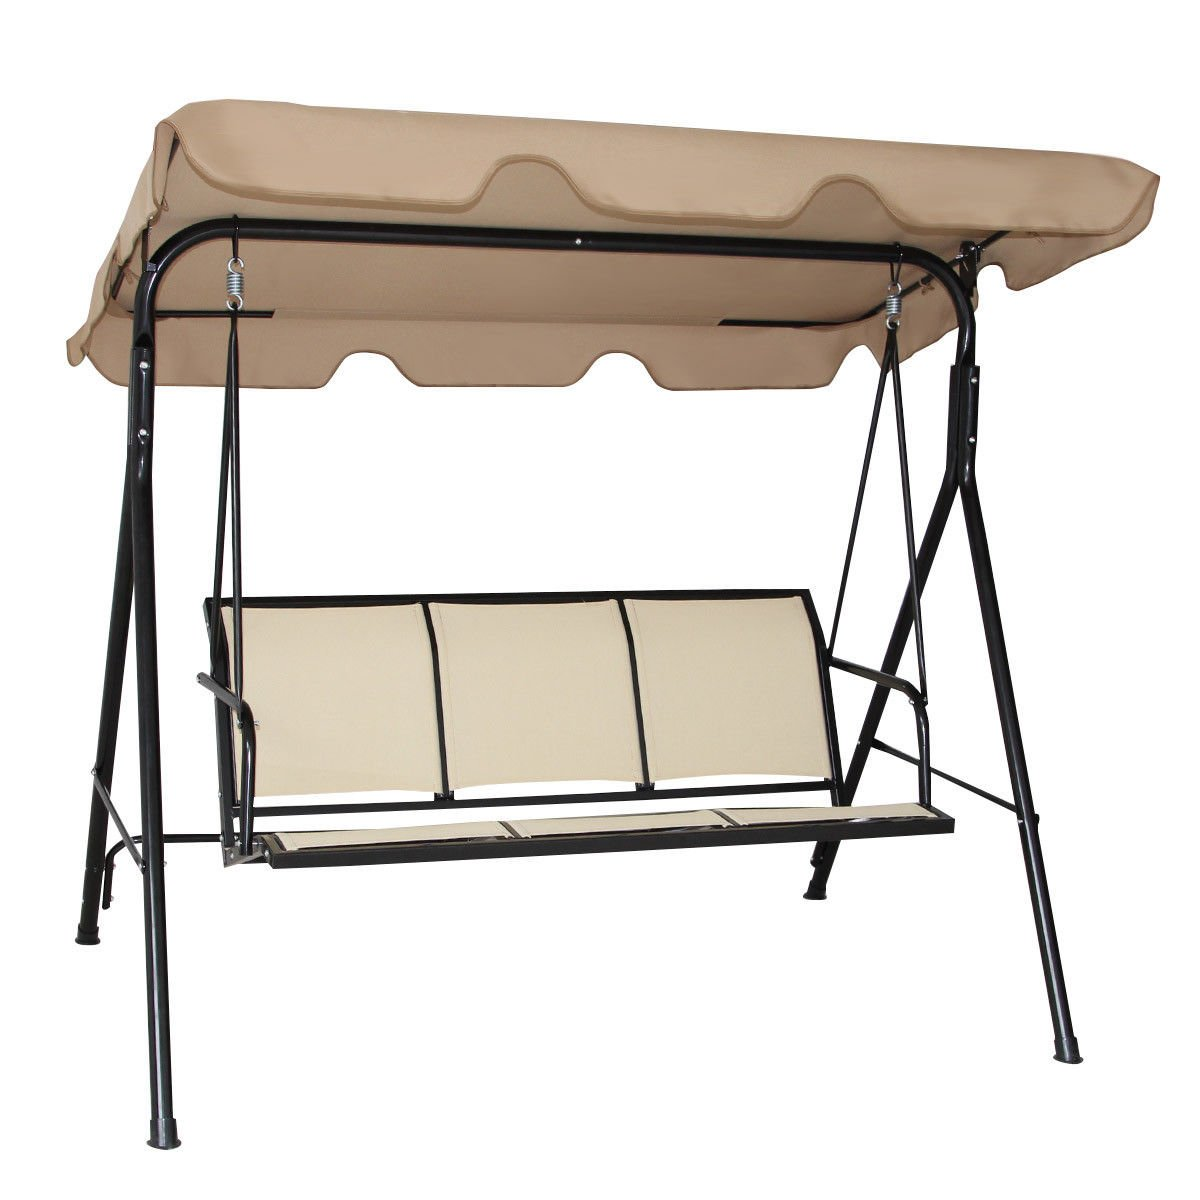 FDInspiration 67'' Light Brown Patio Textile Fiber Swing Canopy 3 Person Seat Capacity 550 Llbs w/Polyester Cloth Top Cover